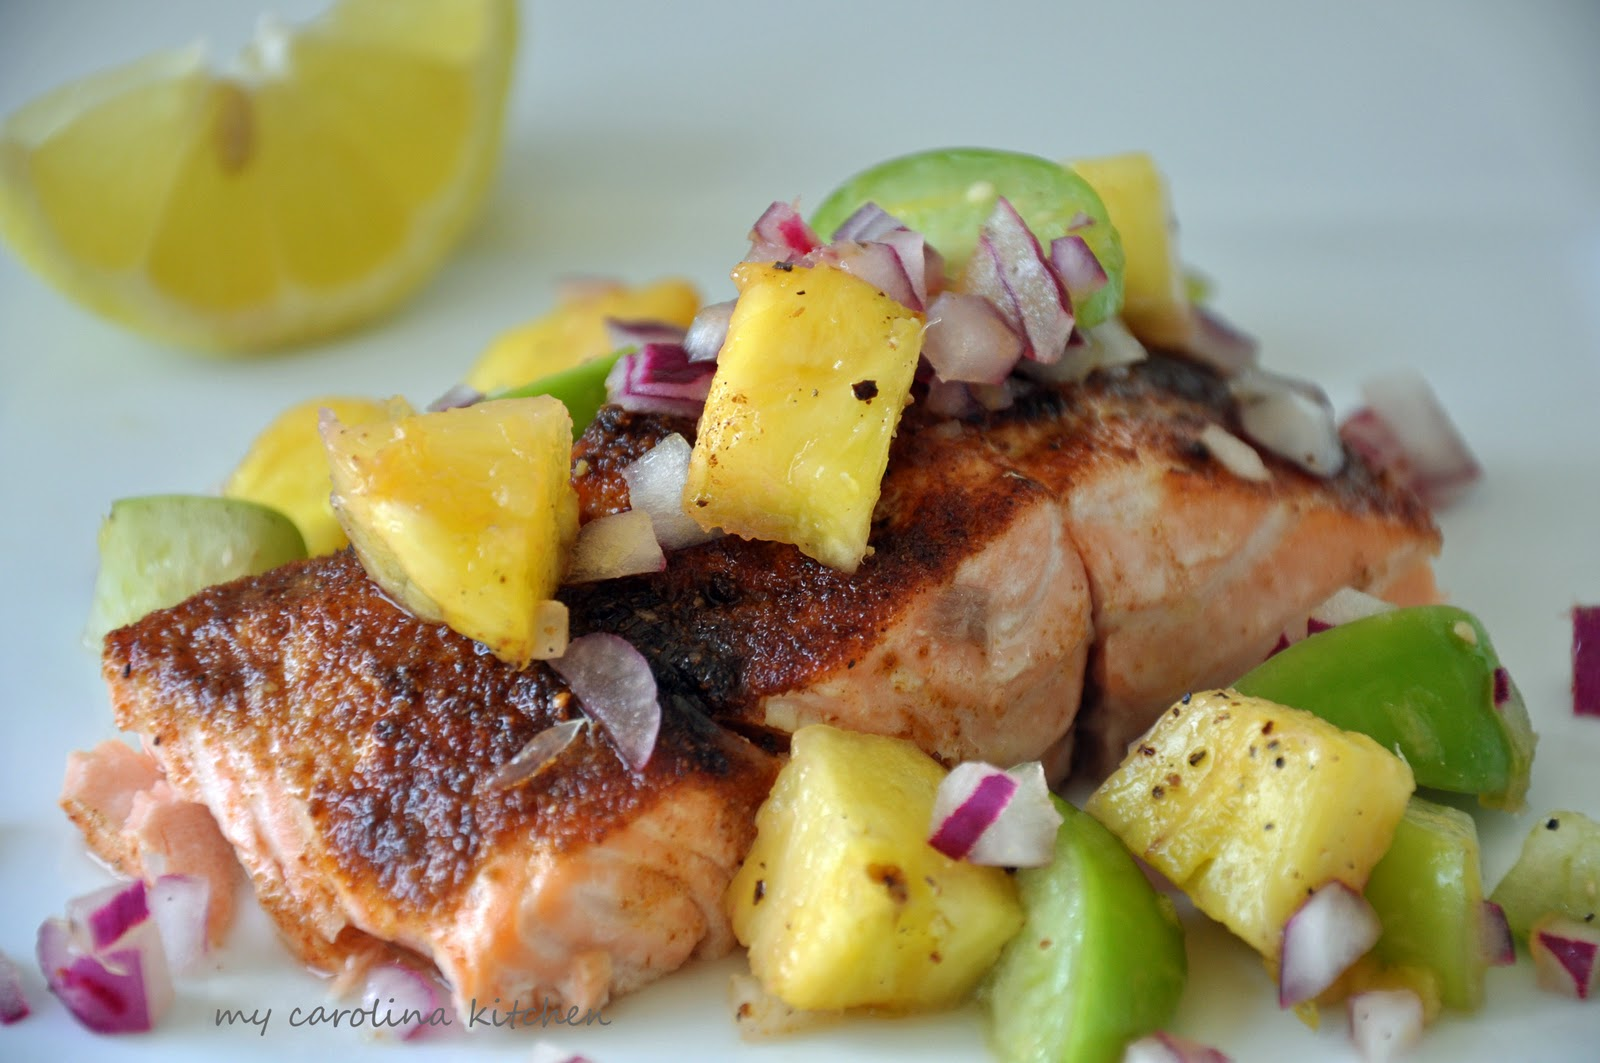 ... Kitchen: Broiled salmon with tropical pineapple and tomatillo salsa